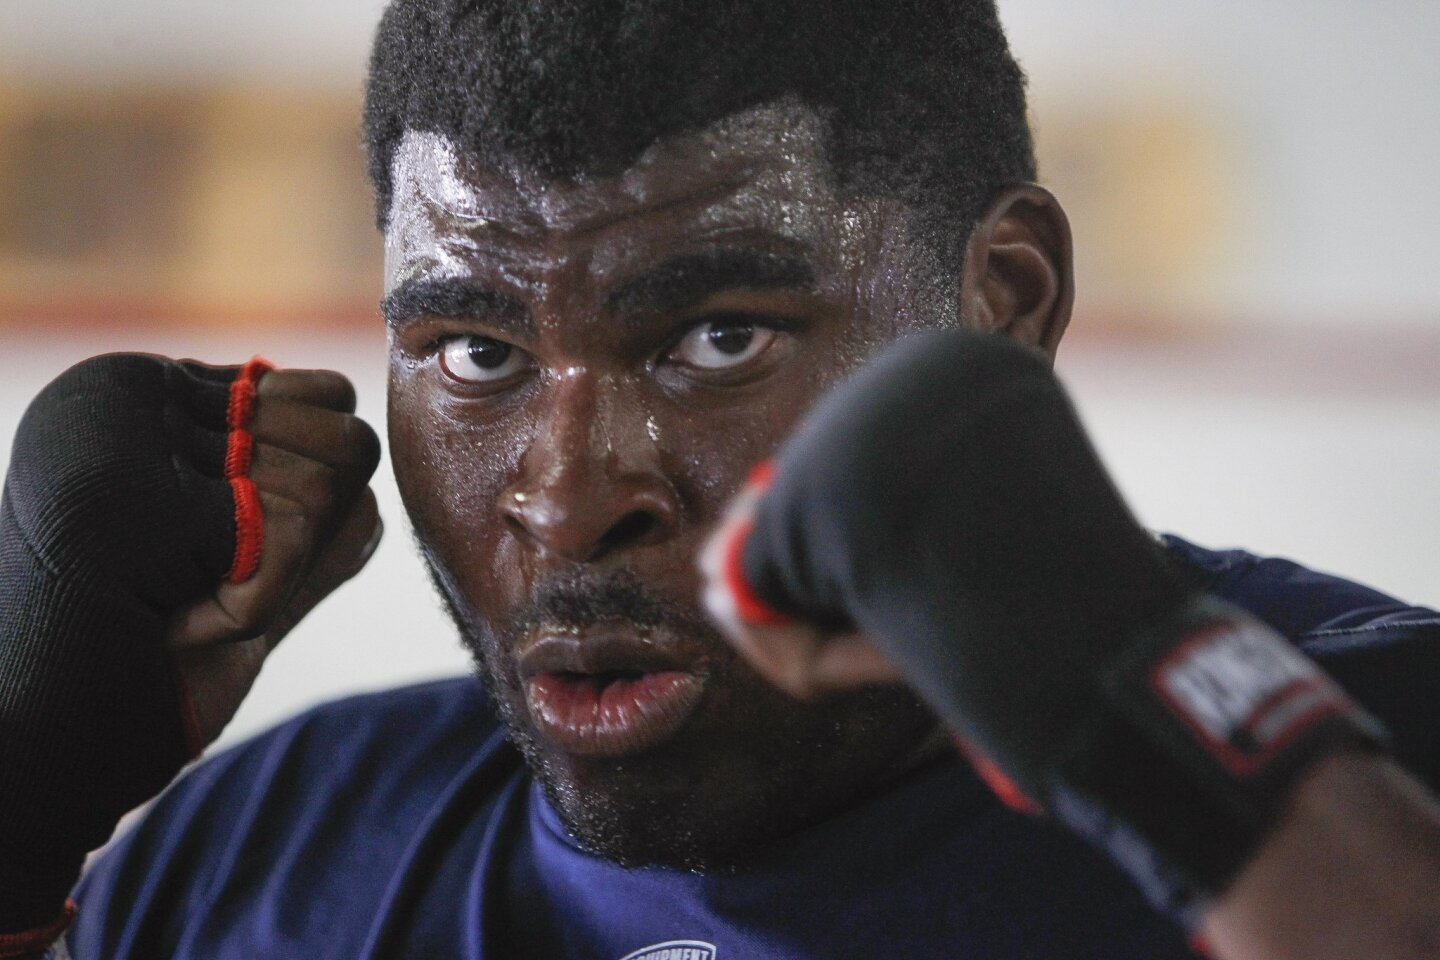 Chargers' D.J. Fluker Trains with Boxing